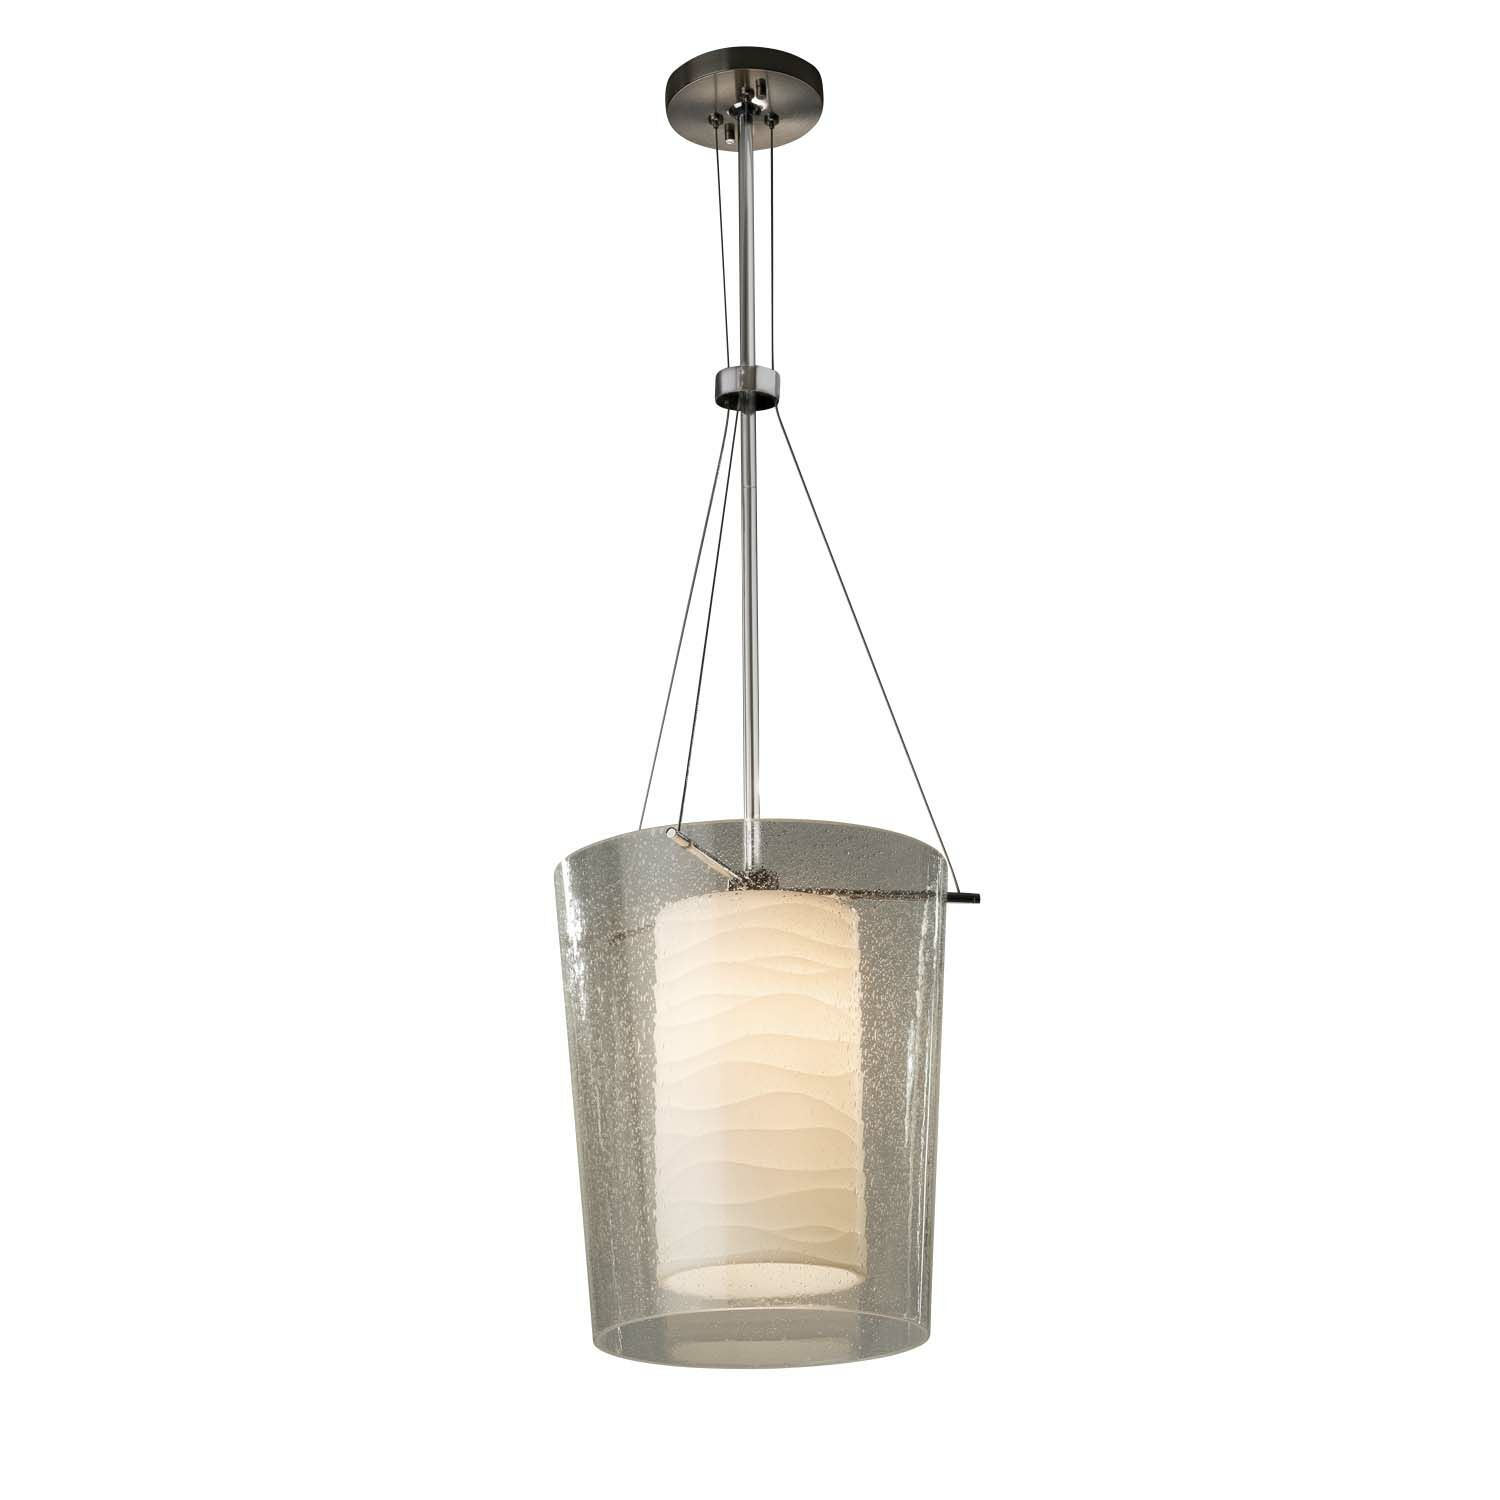 Salaam 1-Light Drum Pendant Shade Color: Waterfall, Finish: Brushed Nickel, Bulb Type: Dedicated LED